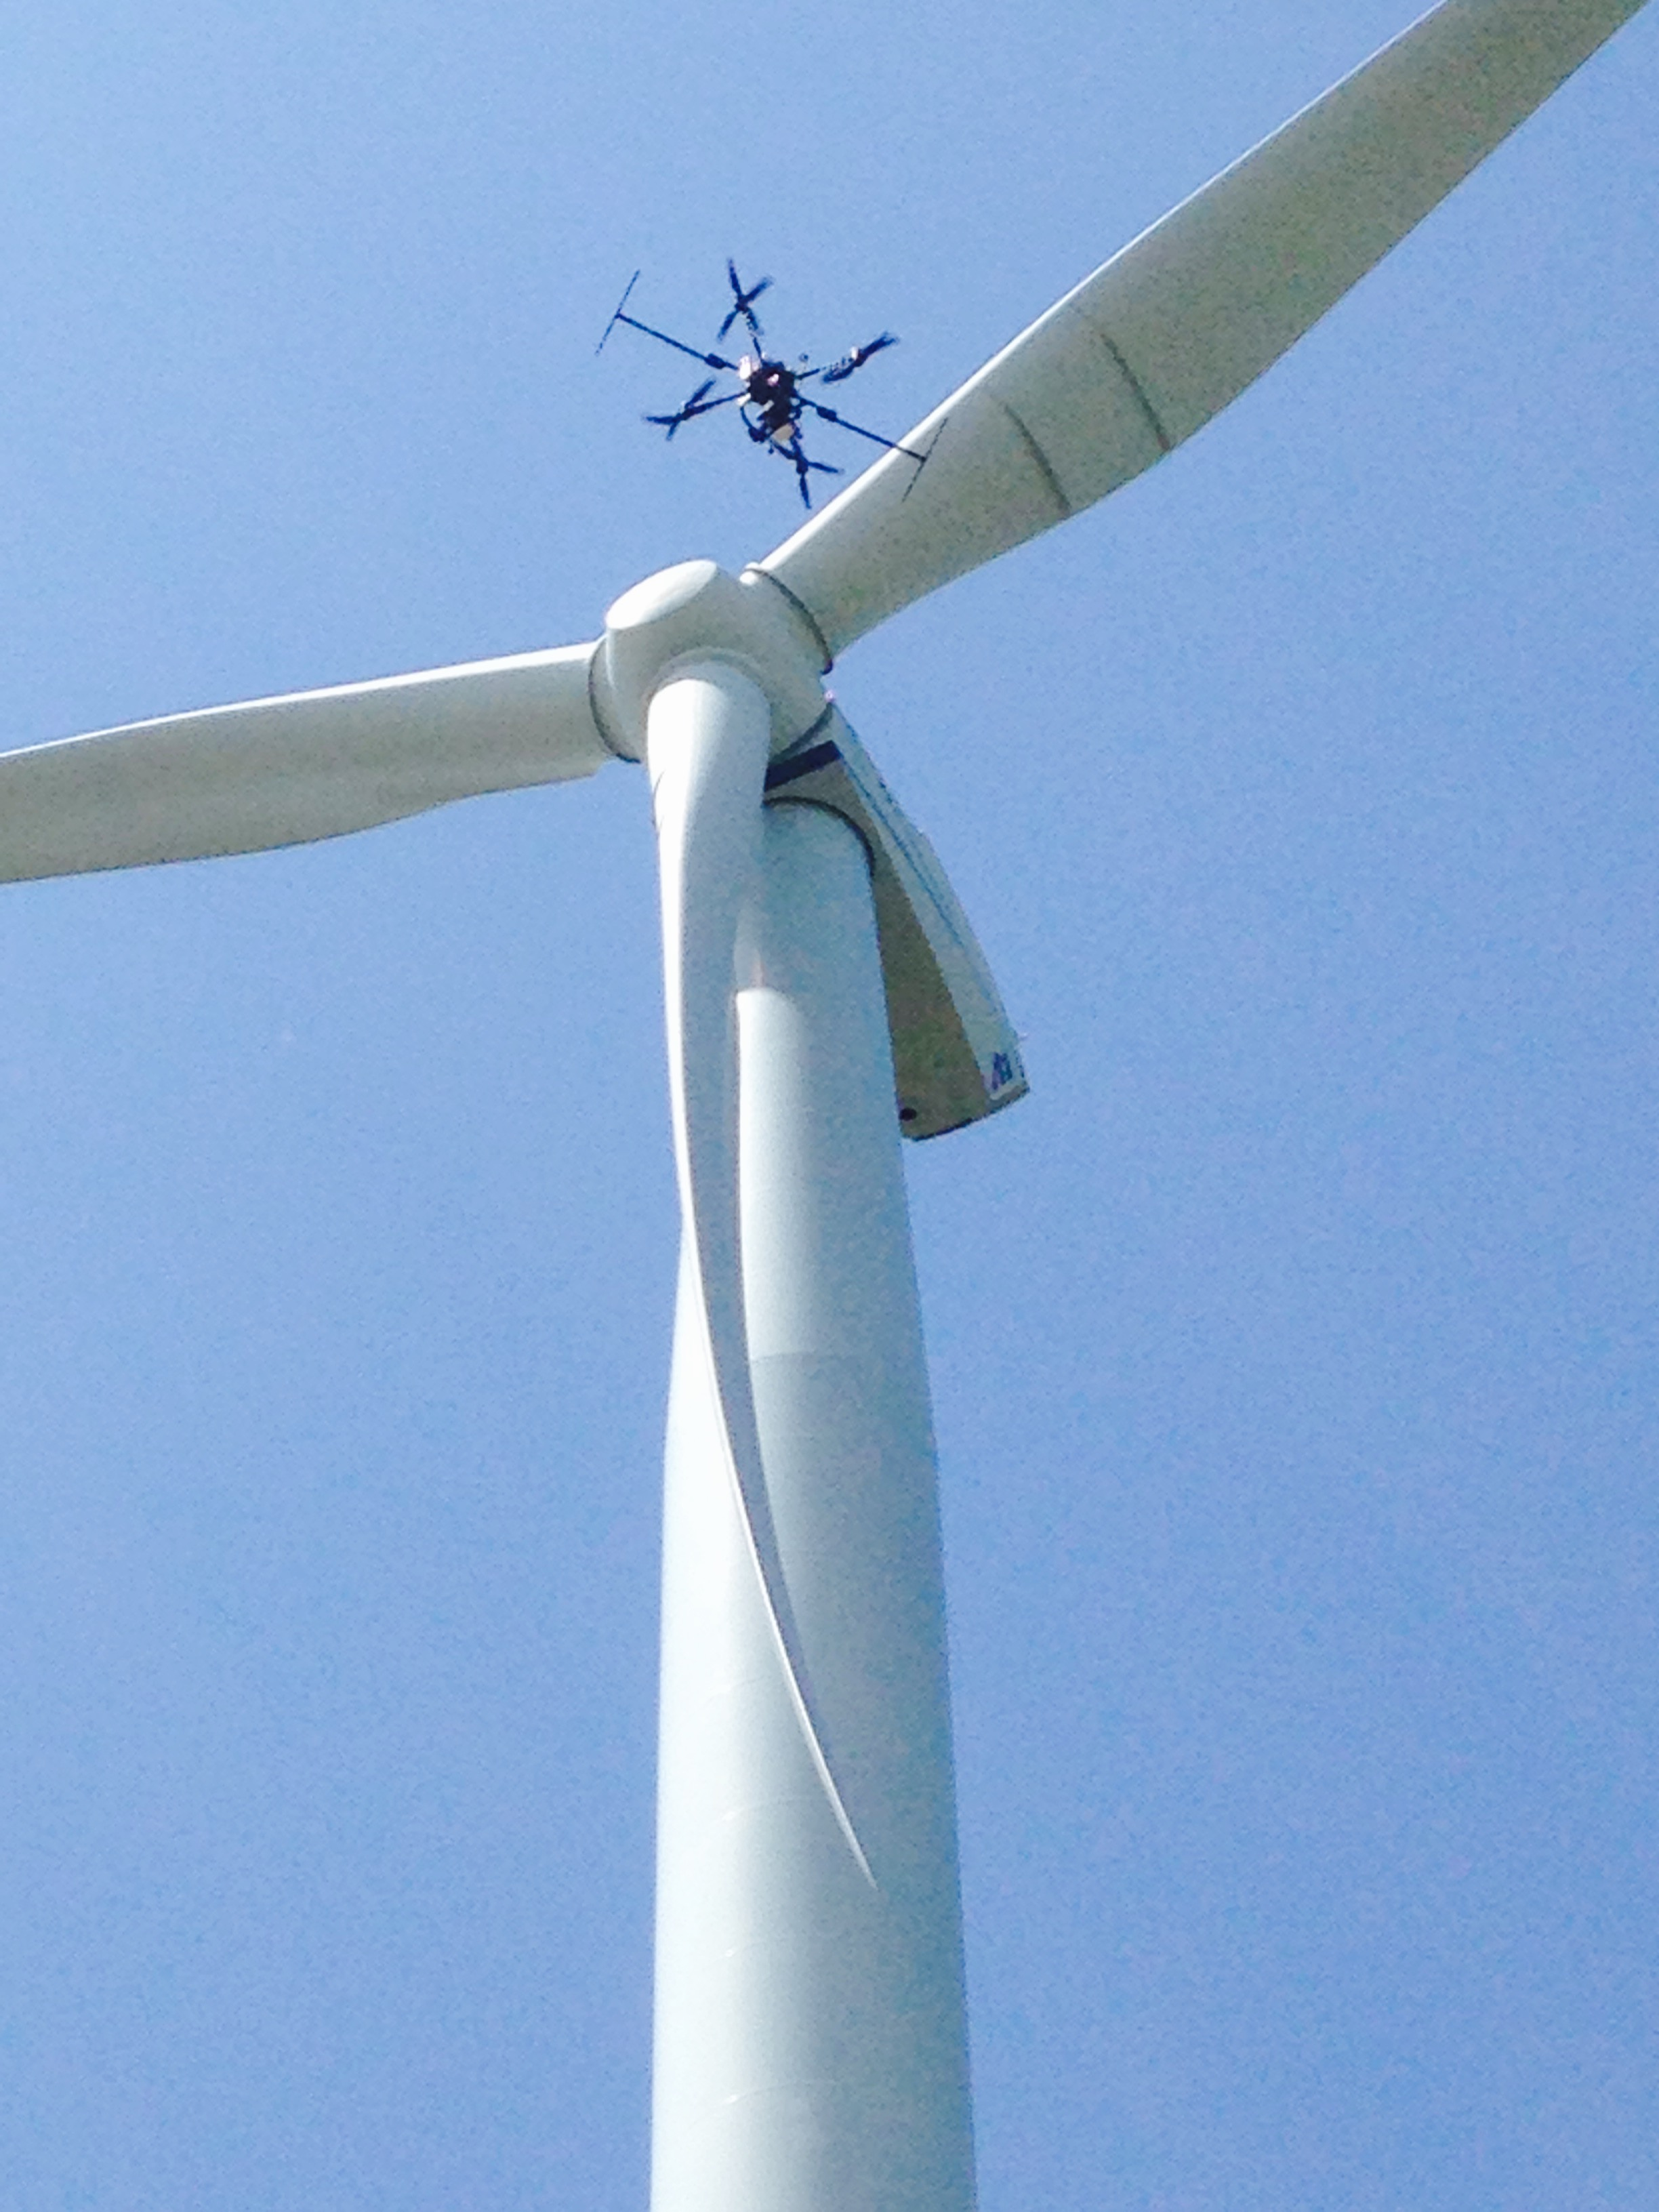 Drone wind turbine inspections provide a safer, cost-effective and data-driven solution